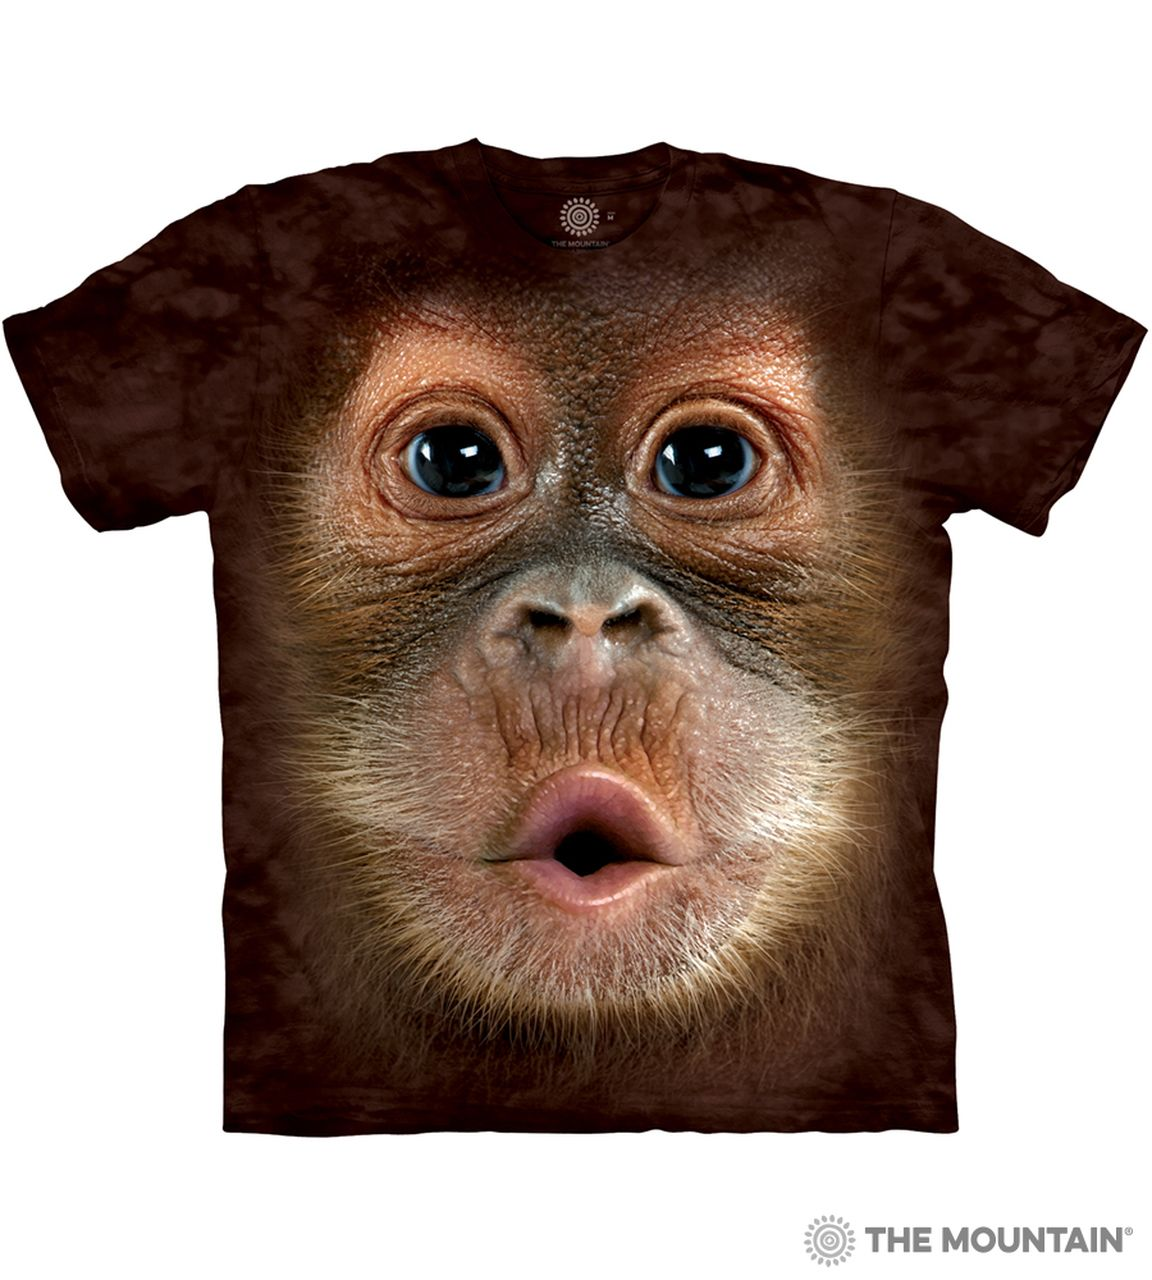 Big Face™ Baby Orangutan - Adult Orangutan T-shirt - The Mountain®